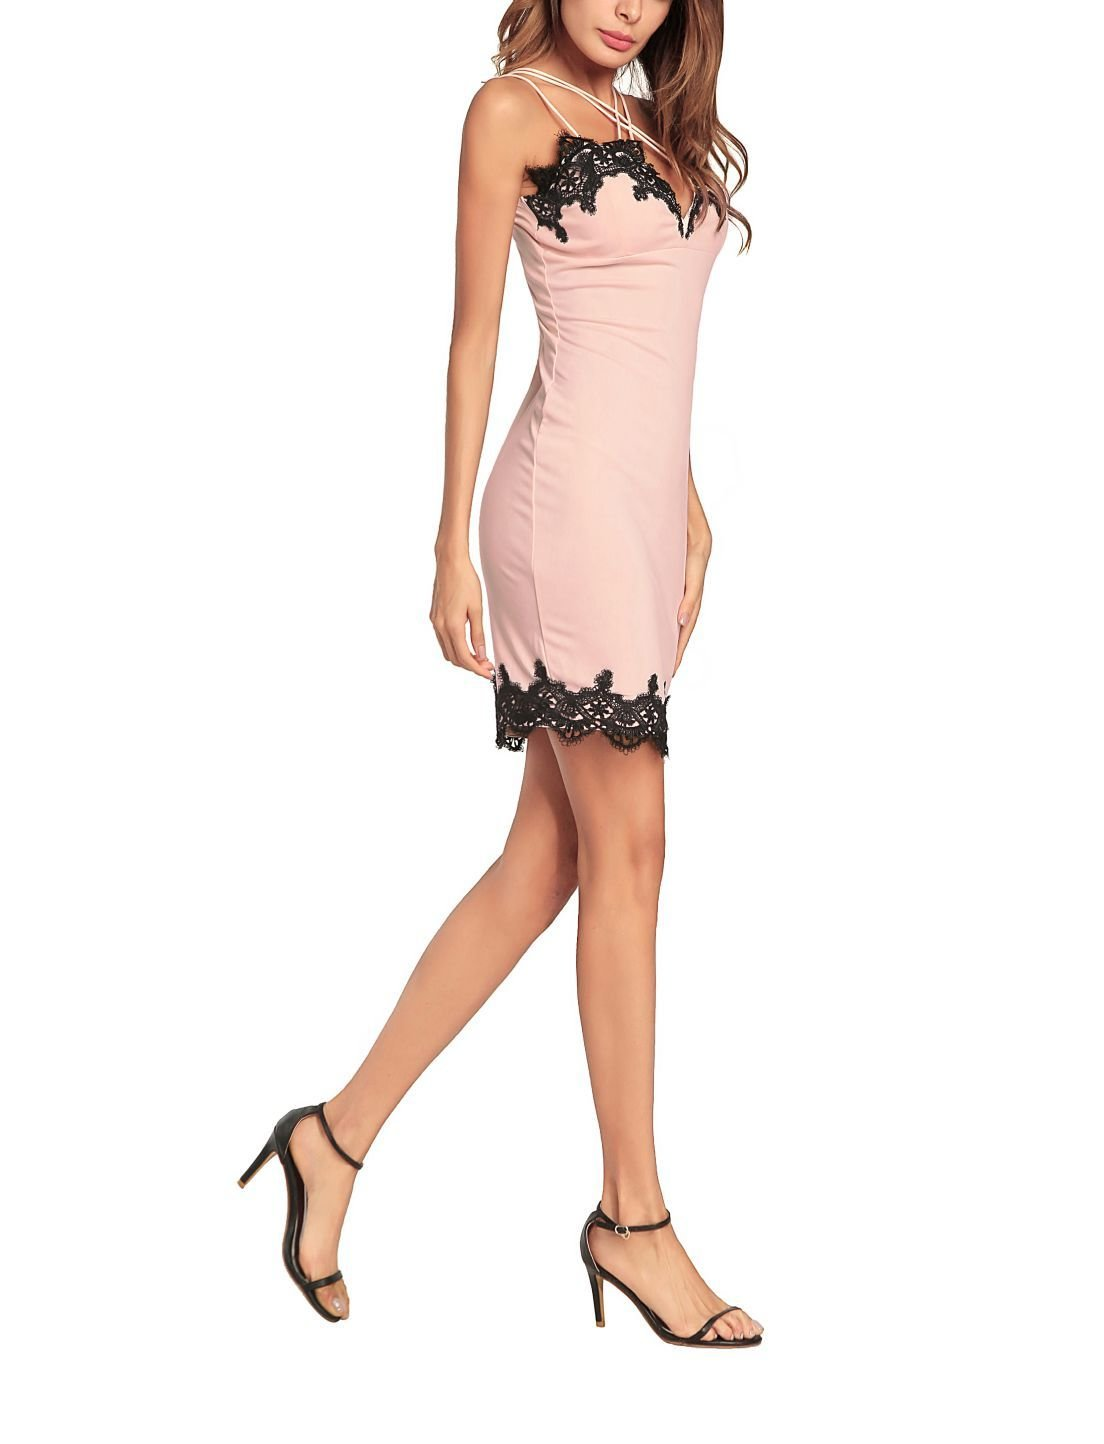 Sexy Formal Dress with Lace Trim